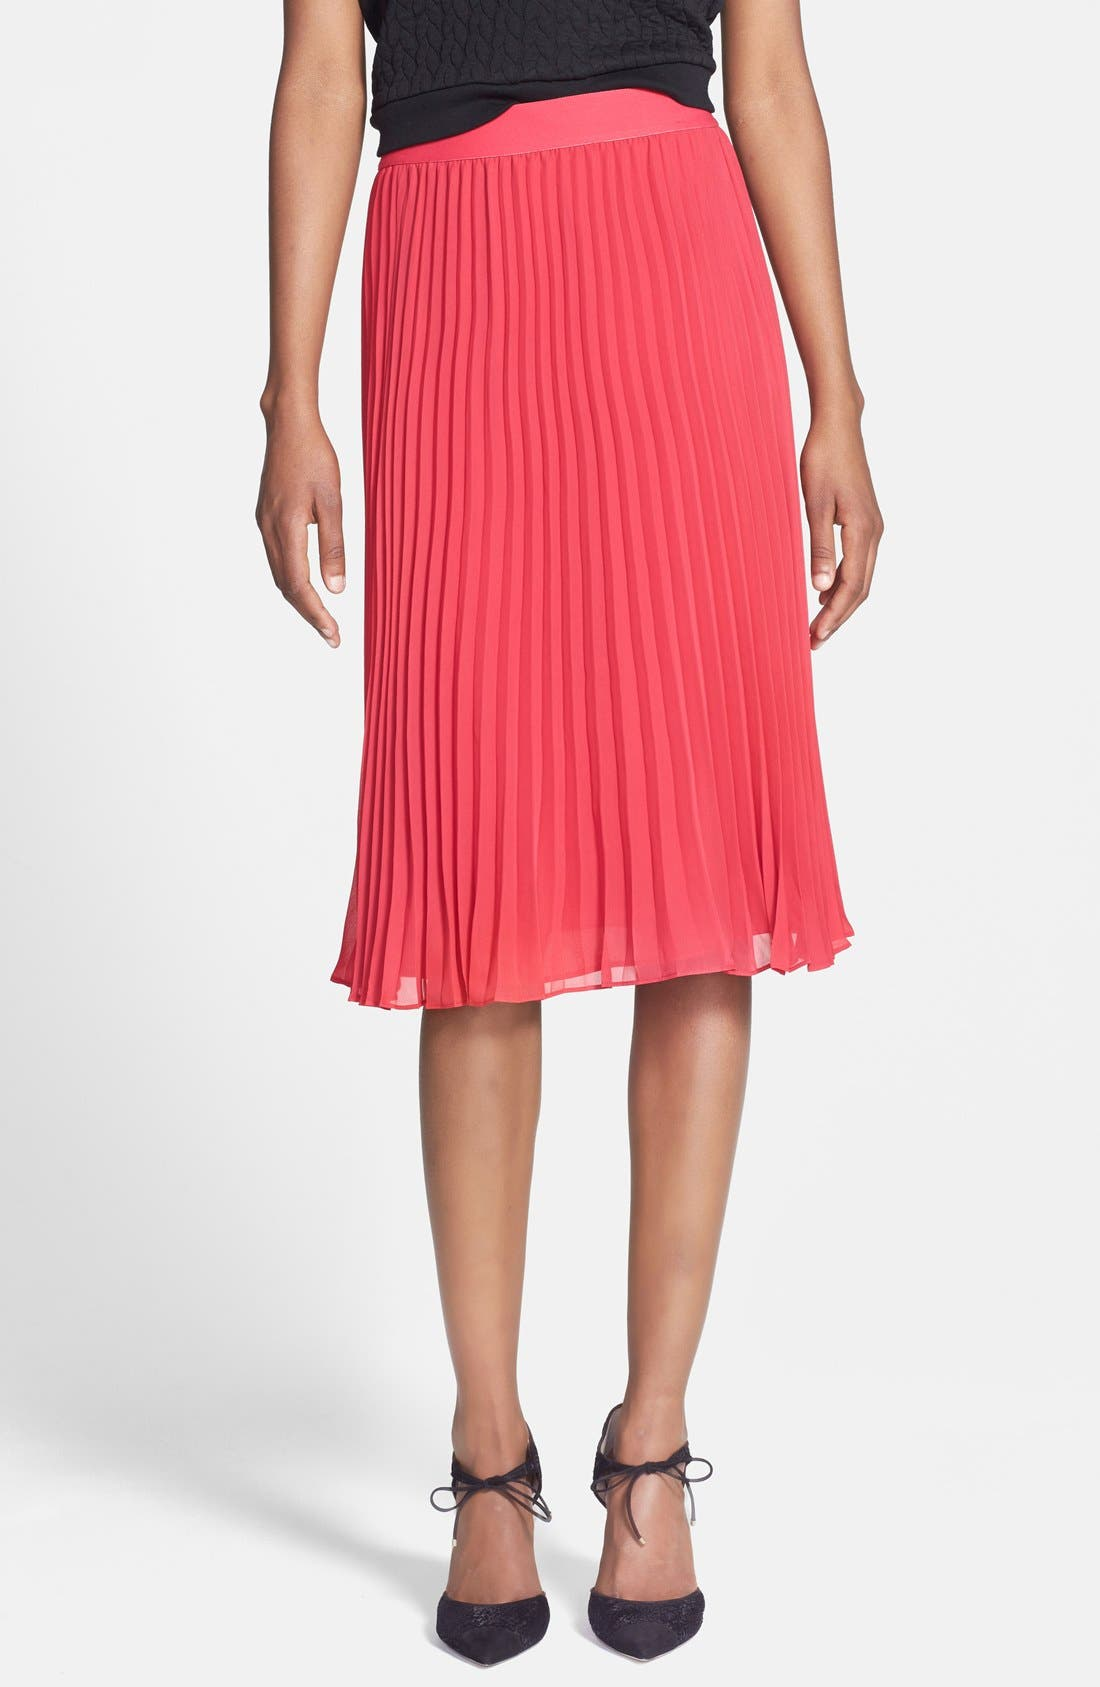 Alternate Image 1 Selected - Chelsea28 Pleated Midi Skirt